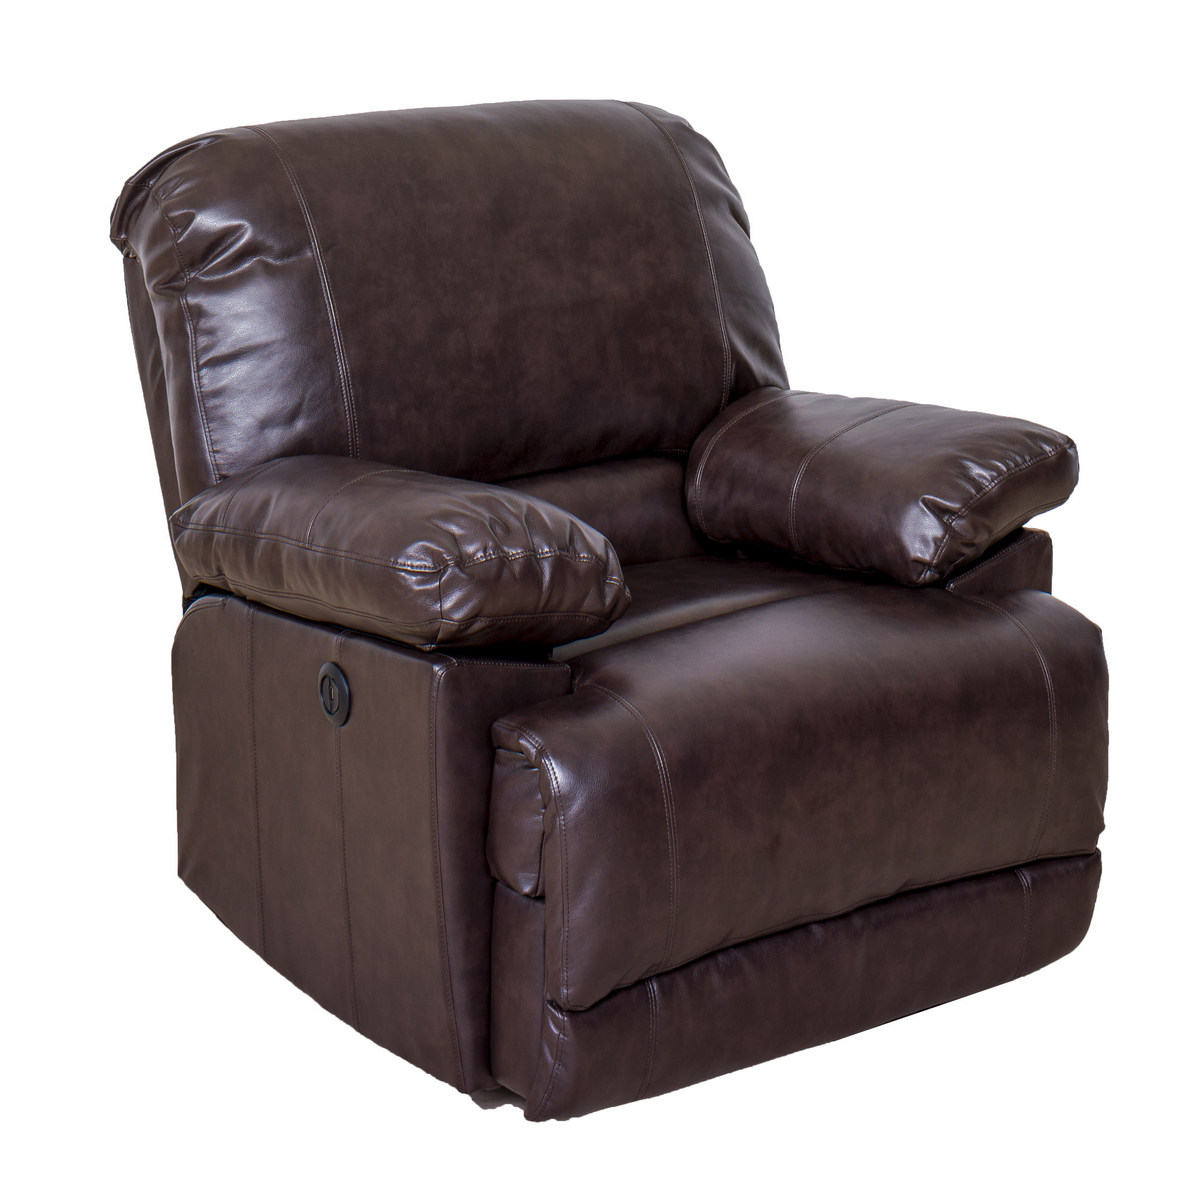 Corliving R Lea Chocolate Brown Bonded Leather Power Recliner Usb Port